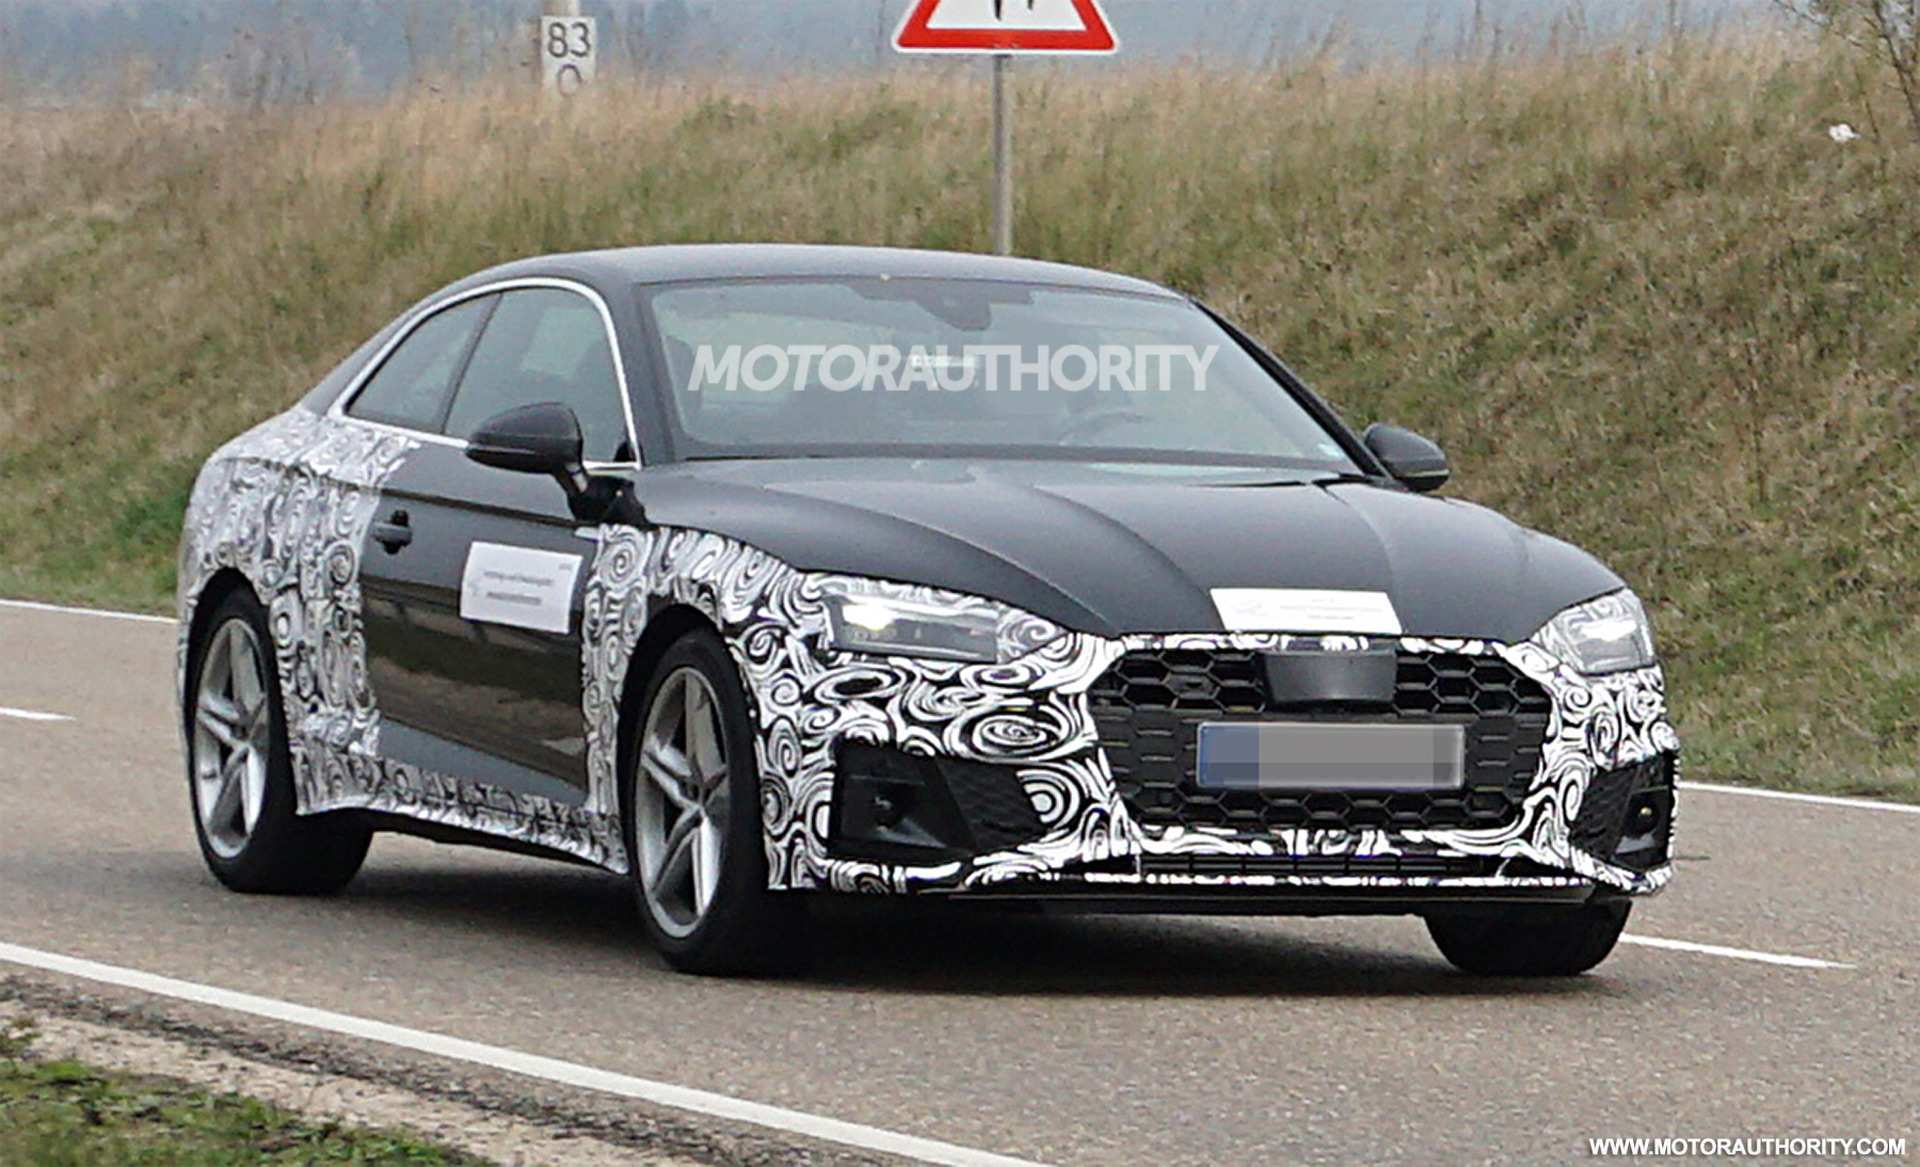 68 A 2020 Audi S5 Price Design And Review